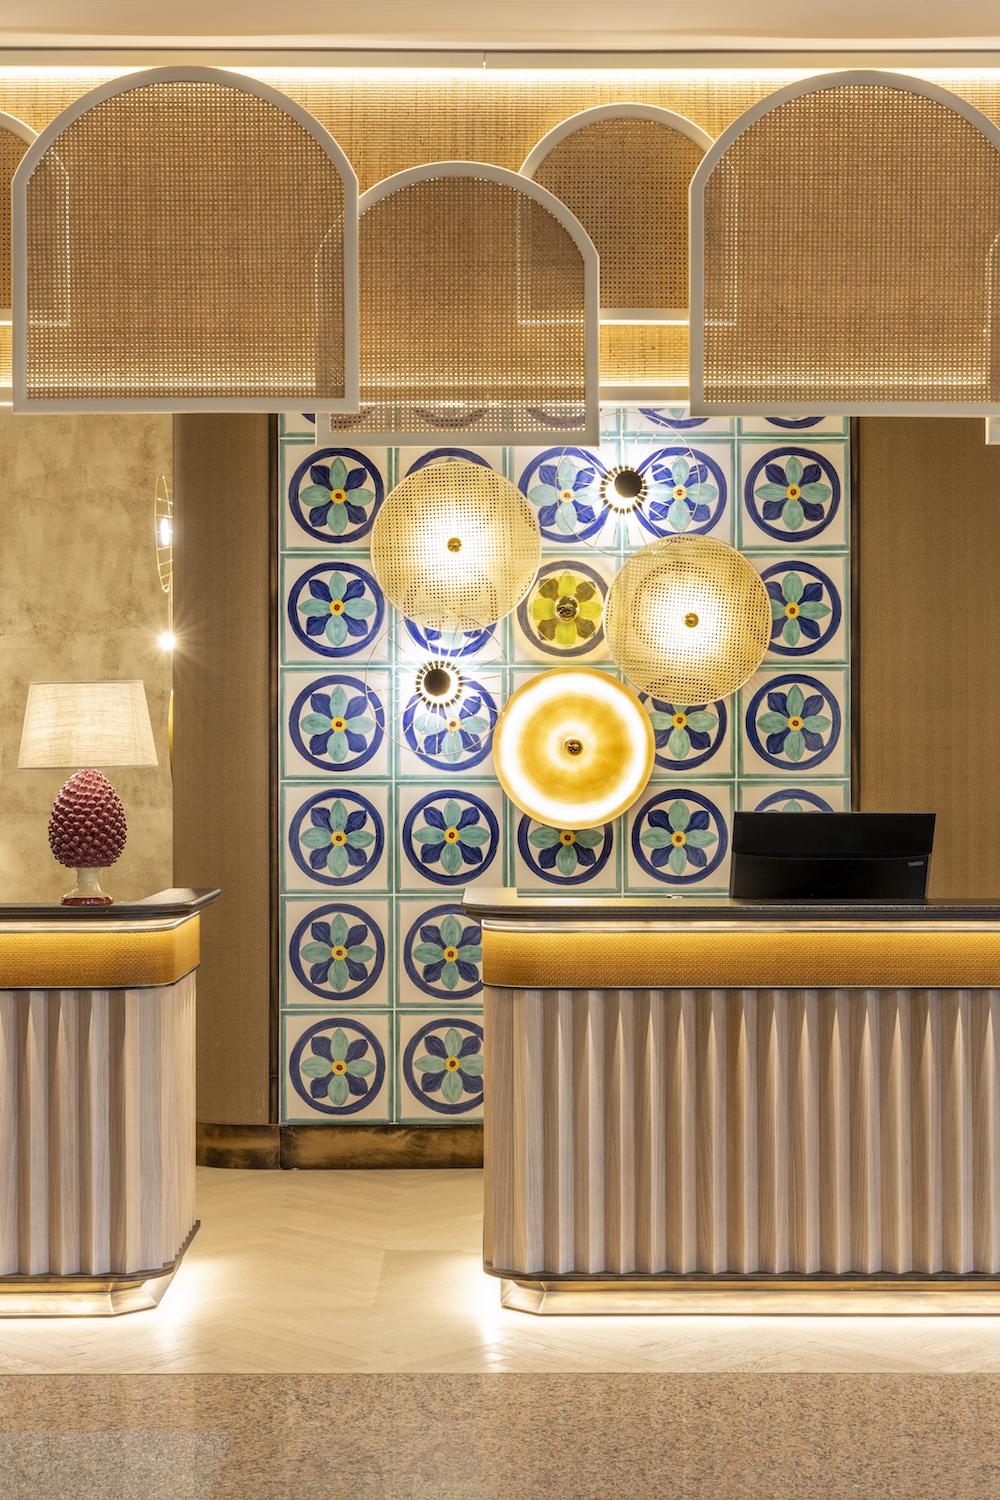 Crafted lobby check-in area inside a luxury hotel in Italy